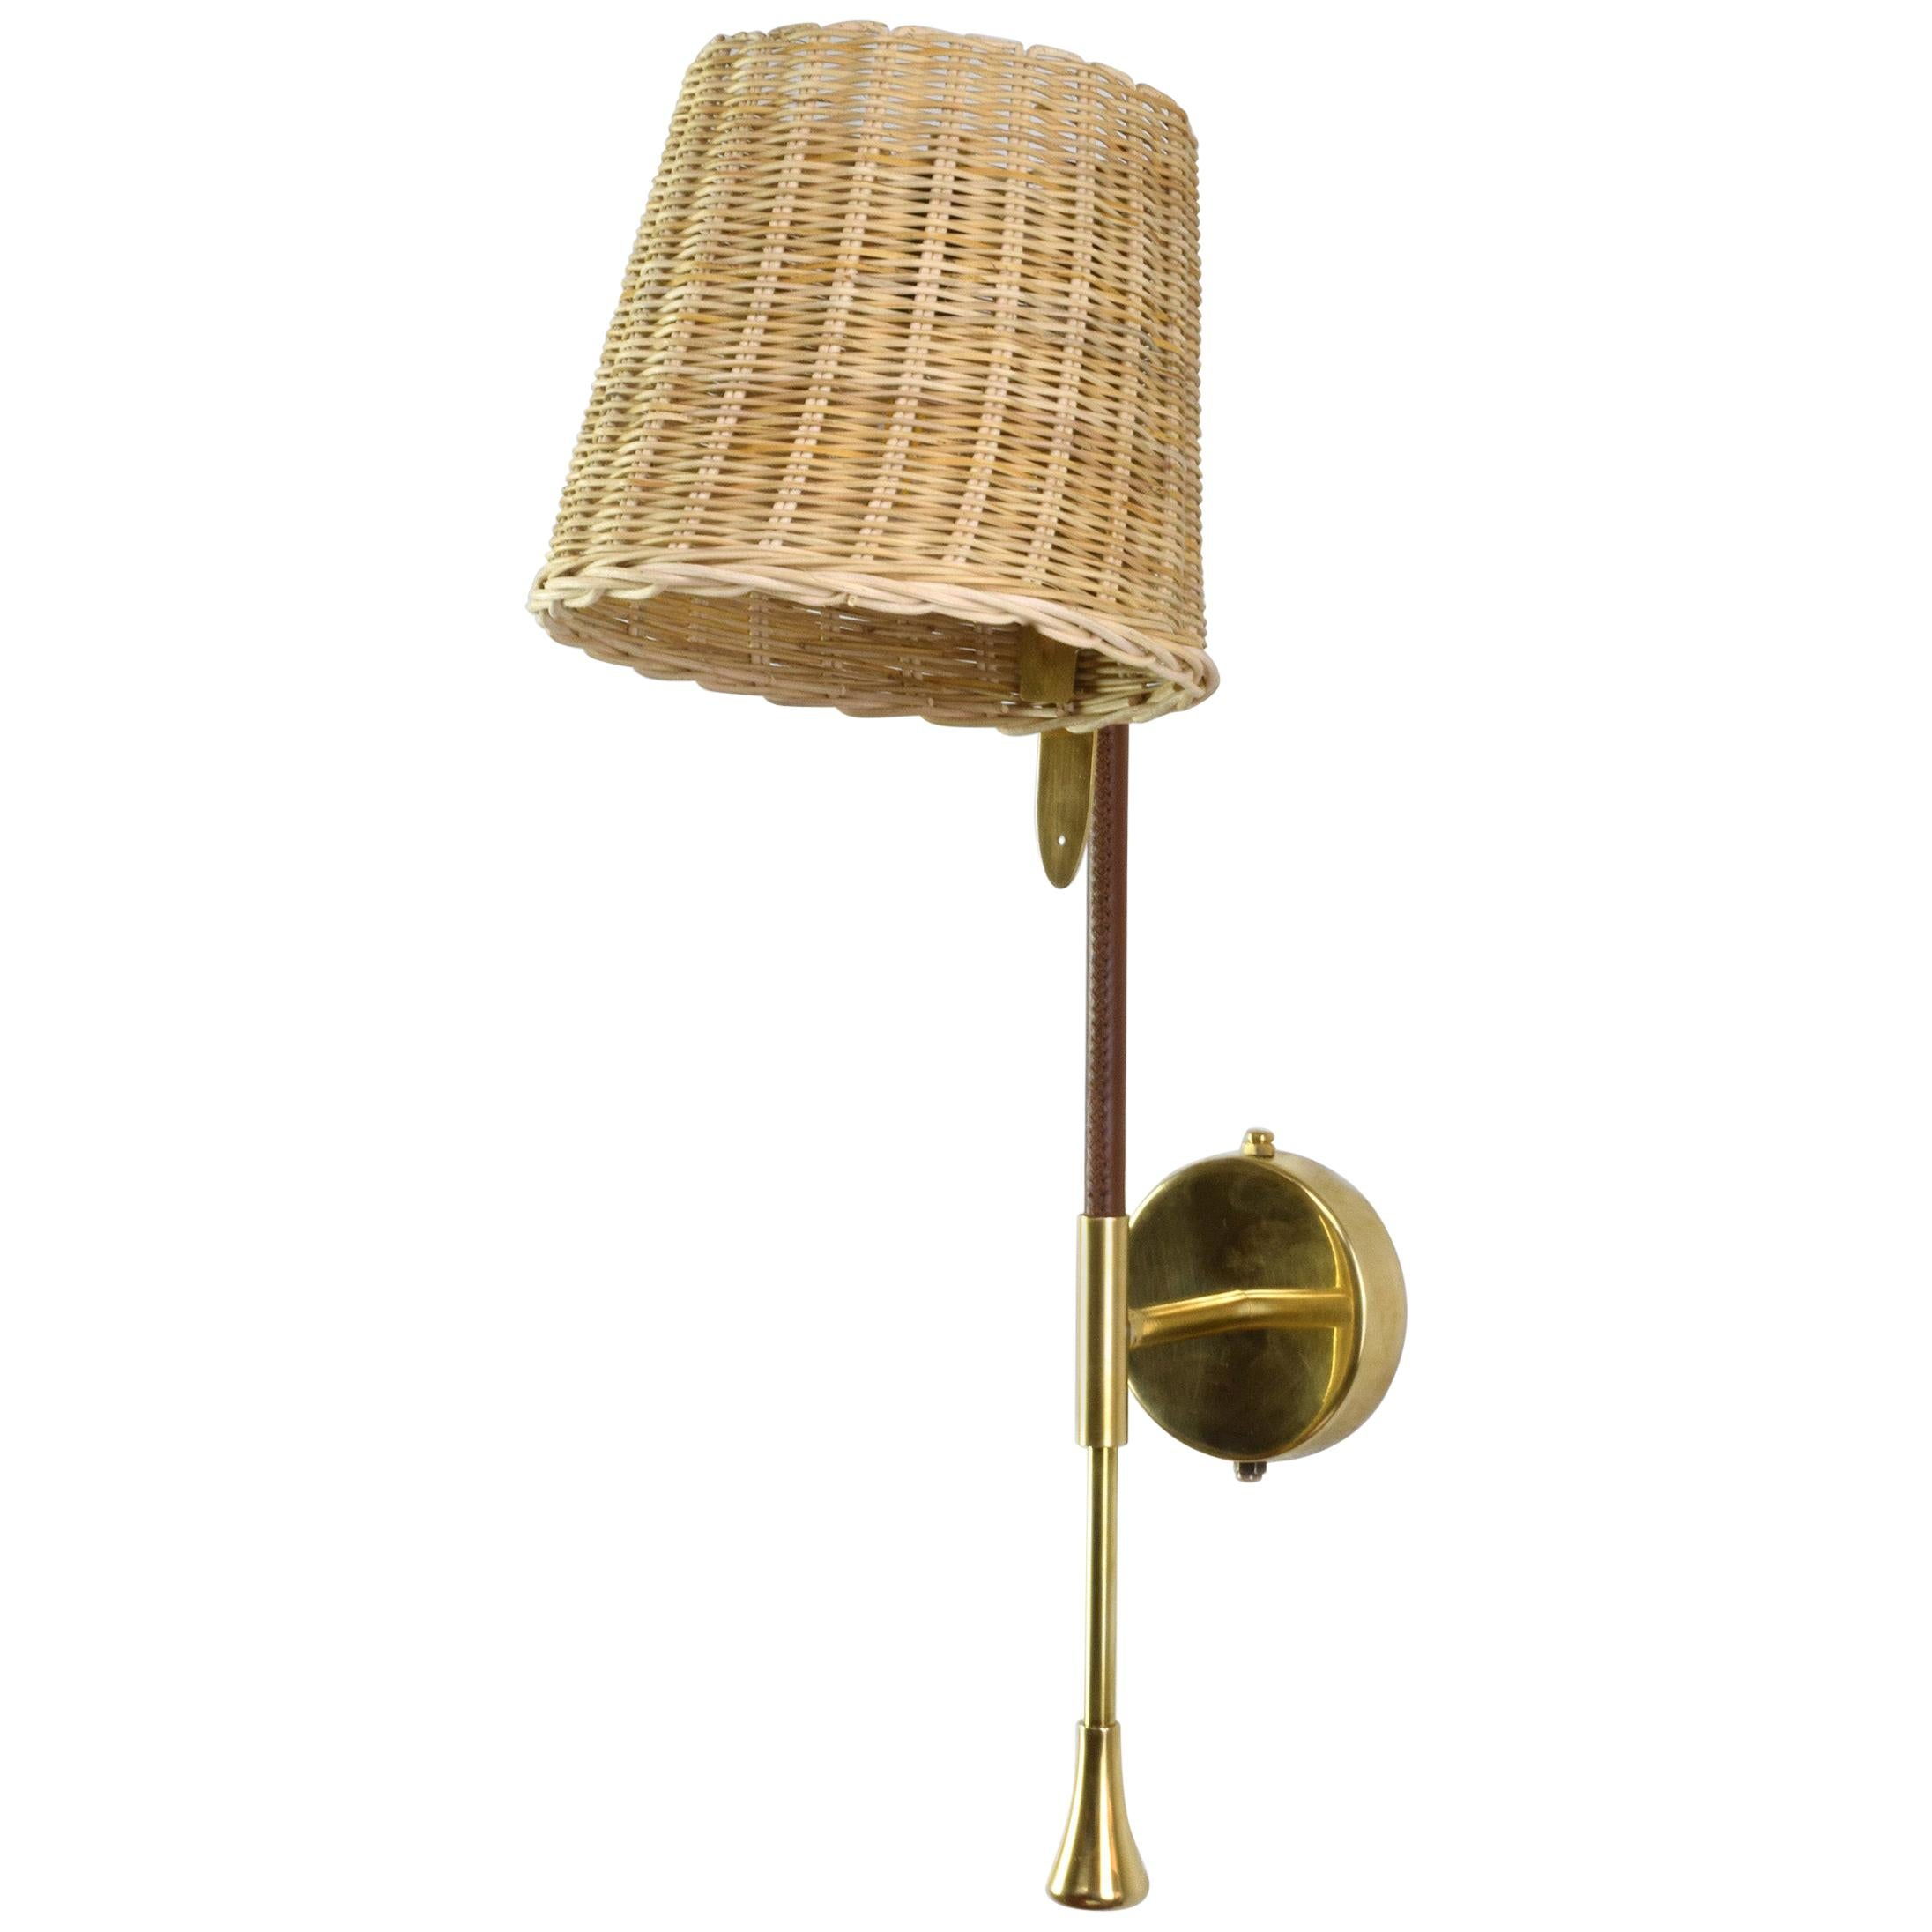 Ancora-W2 Contemporary Brass and Rattan Wall Light, Flow Collection